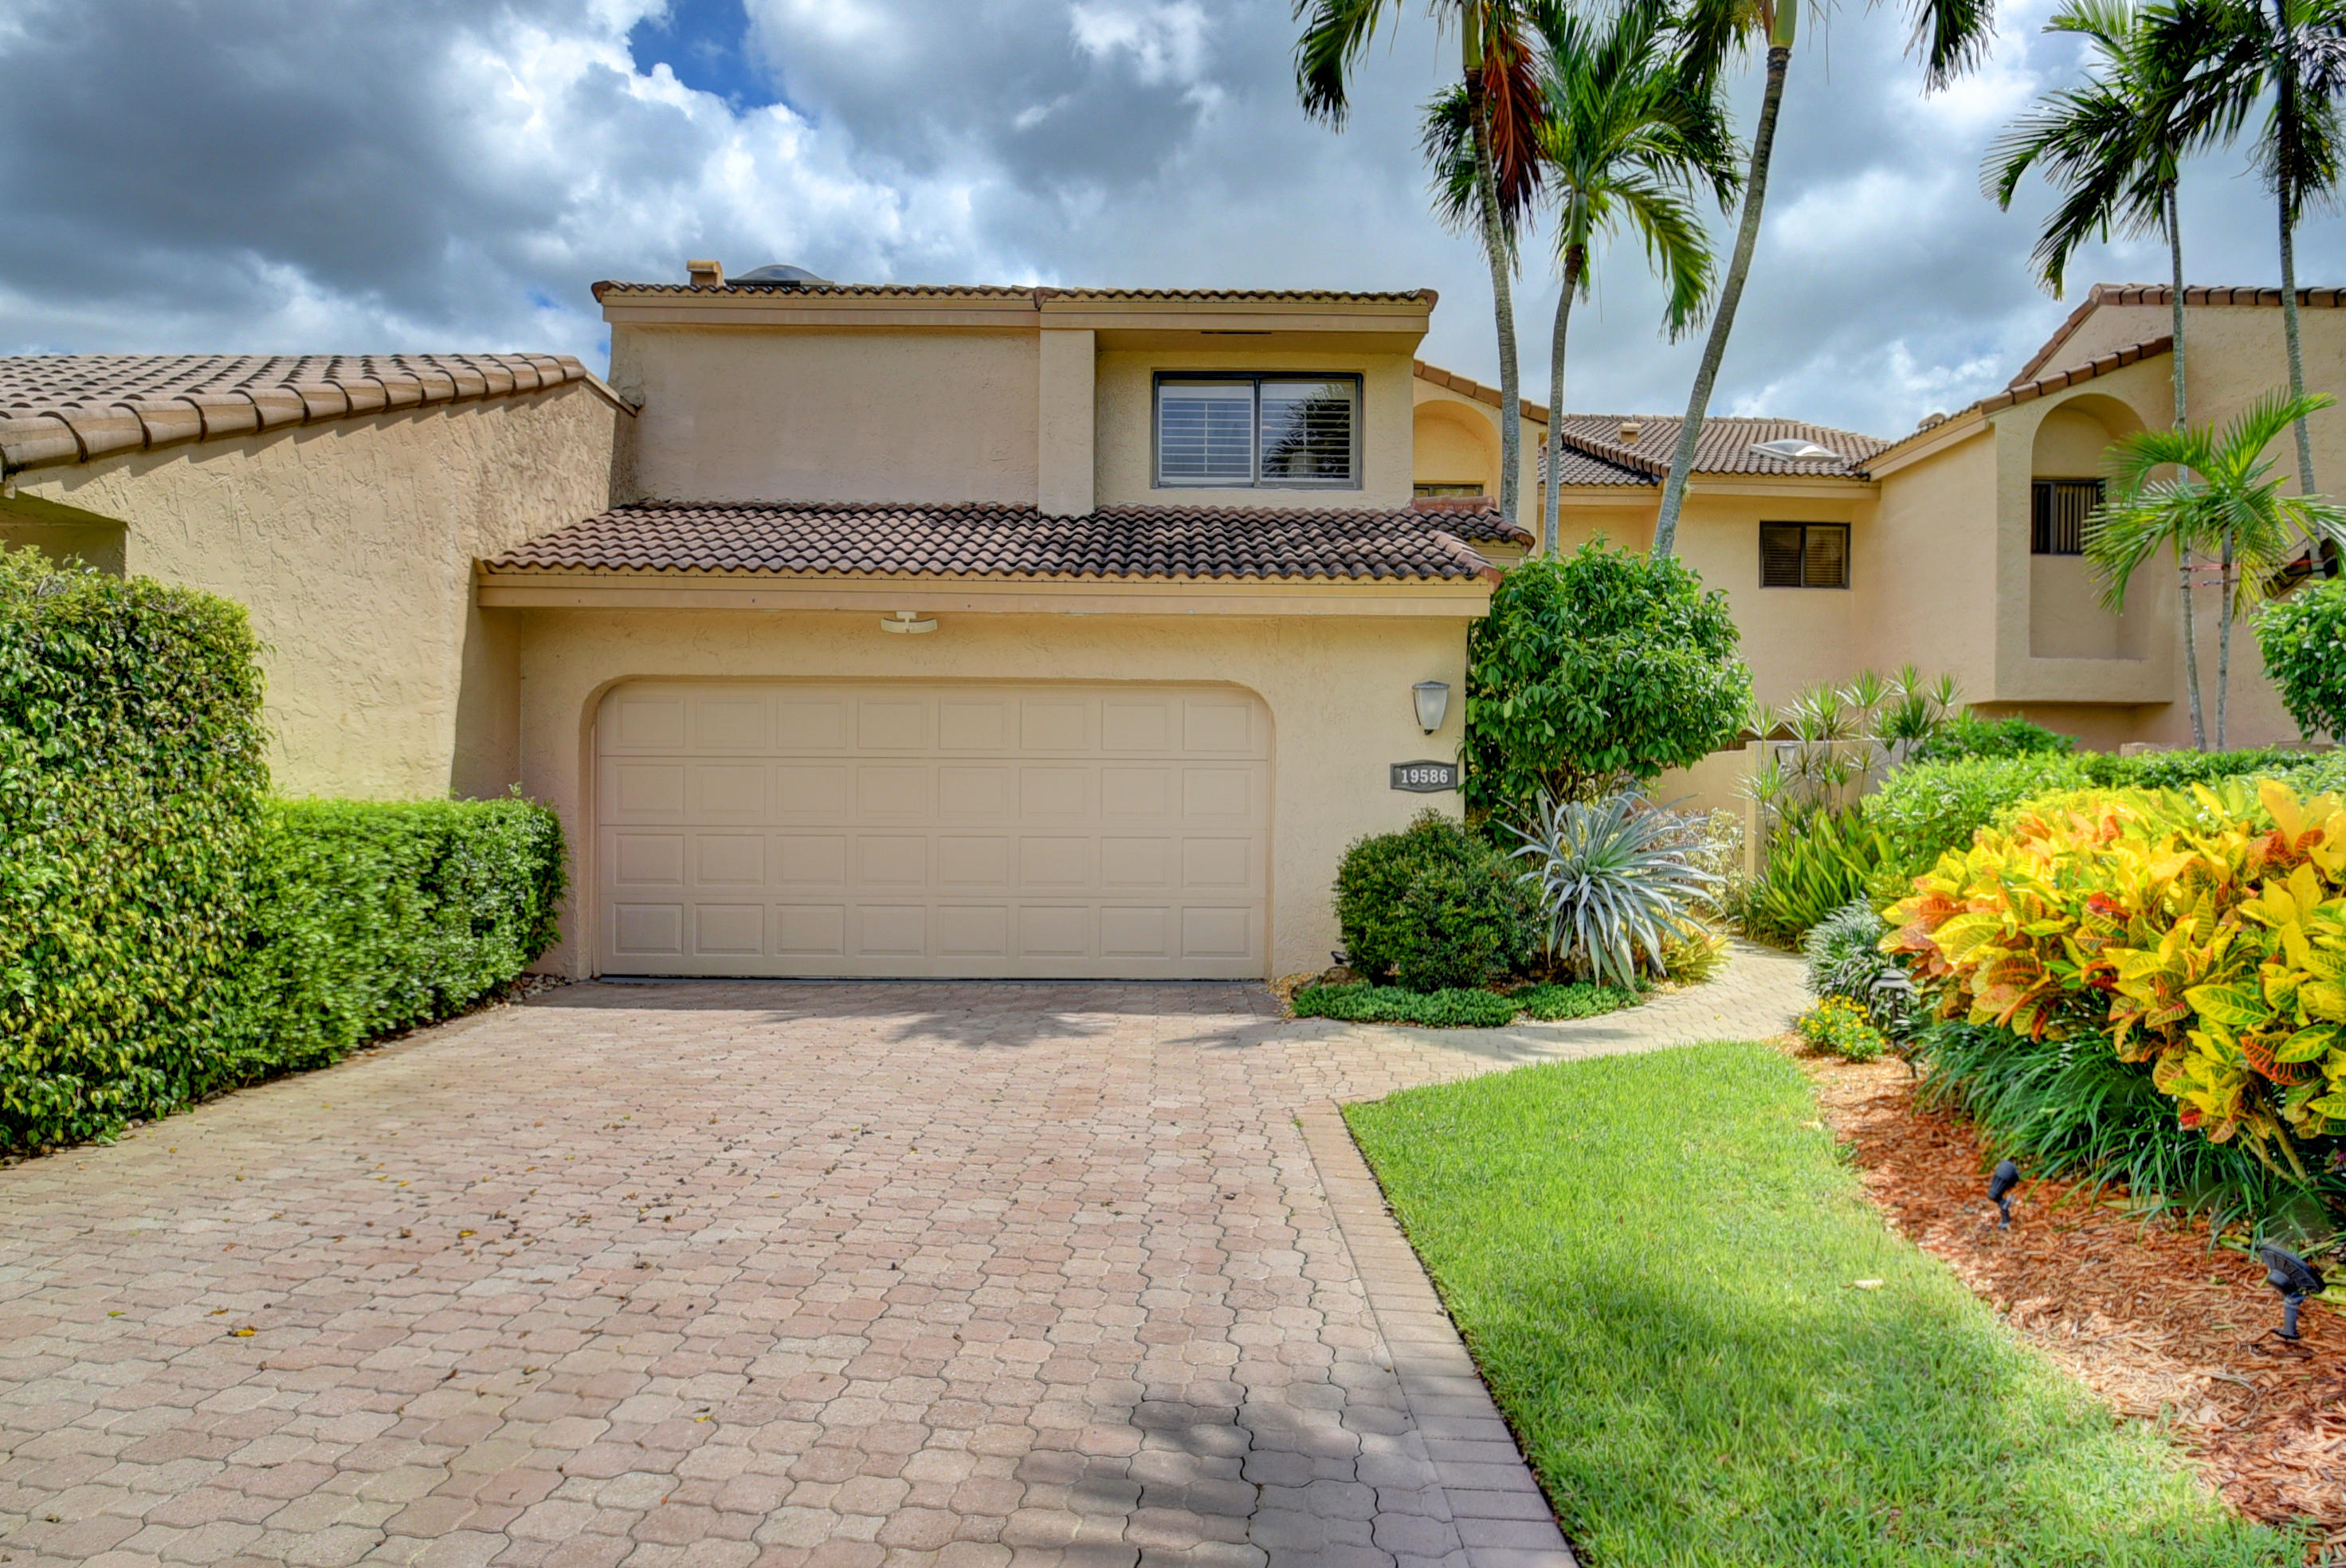 Photo of  Boca Raton, FL 33434 MLS RX-10552545